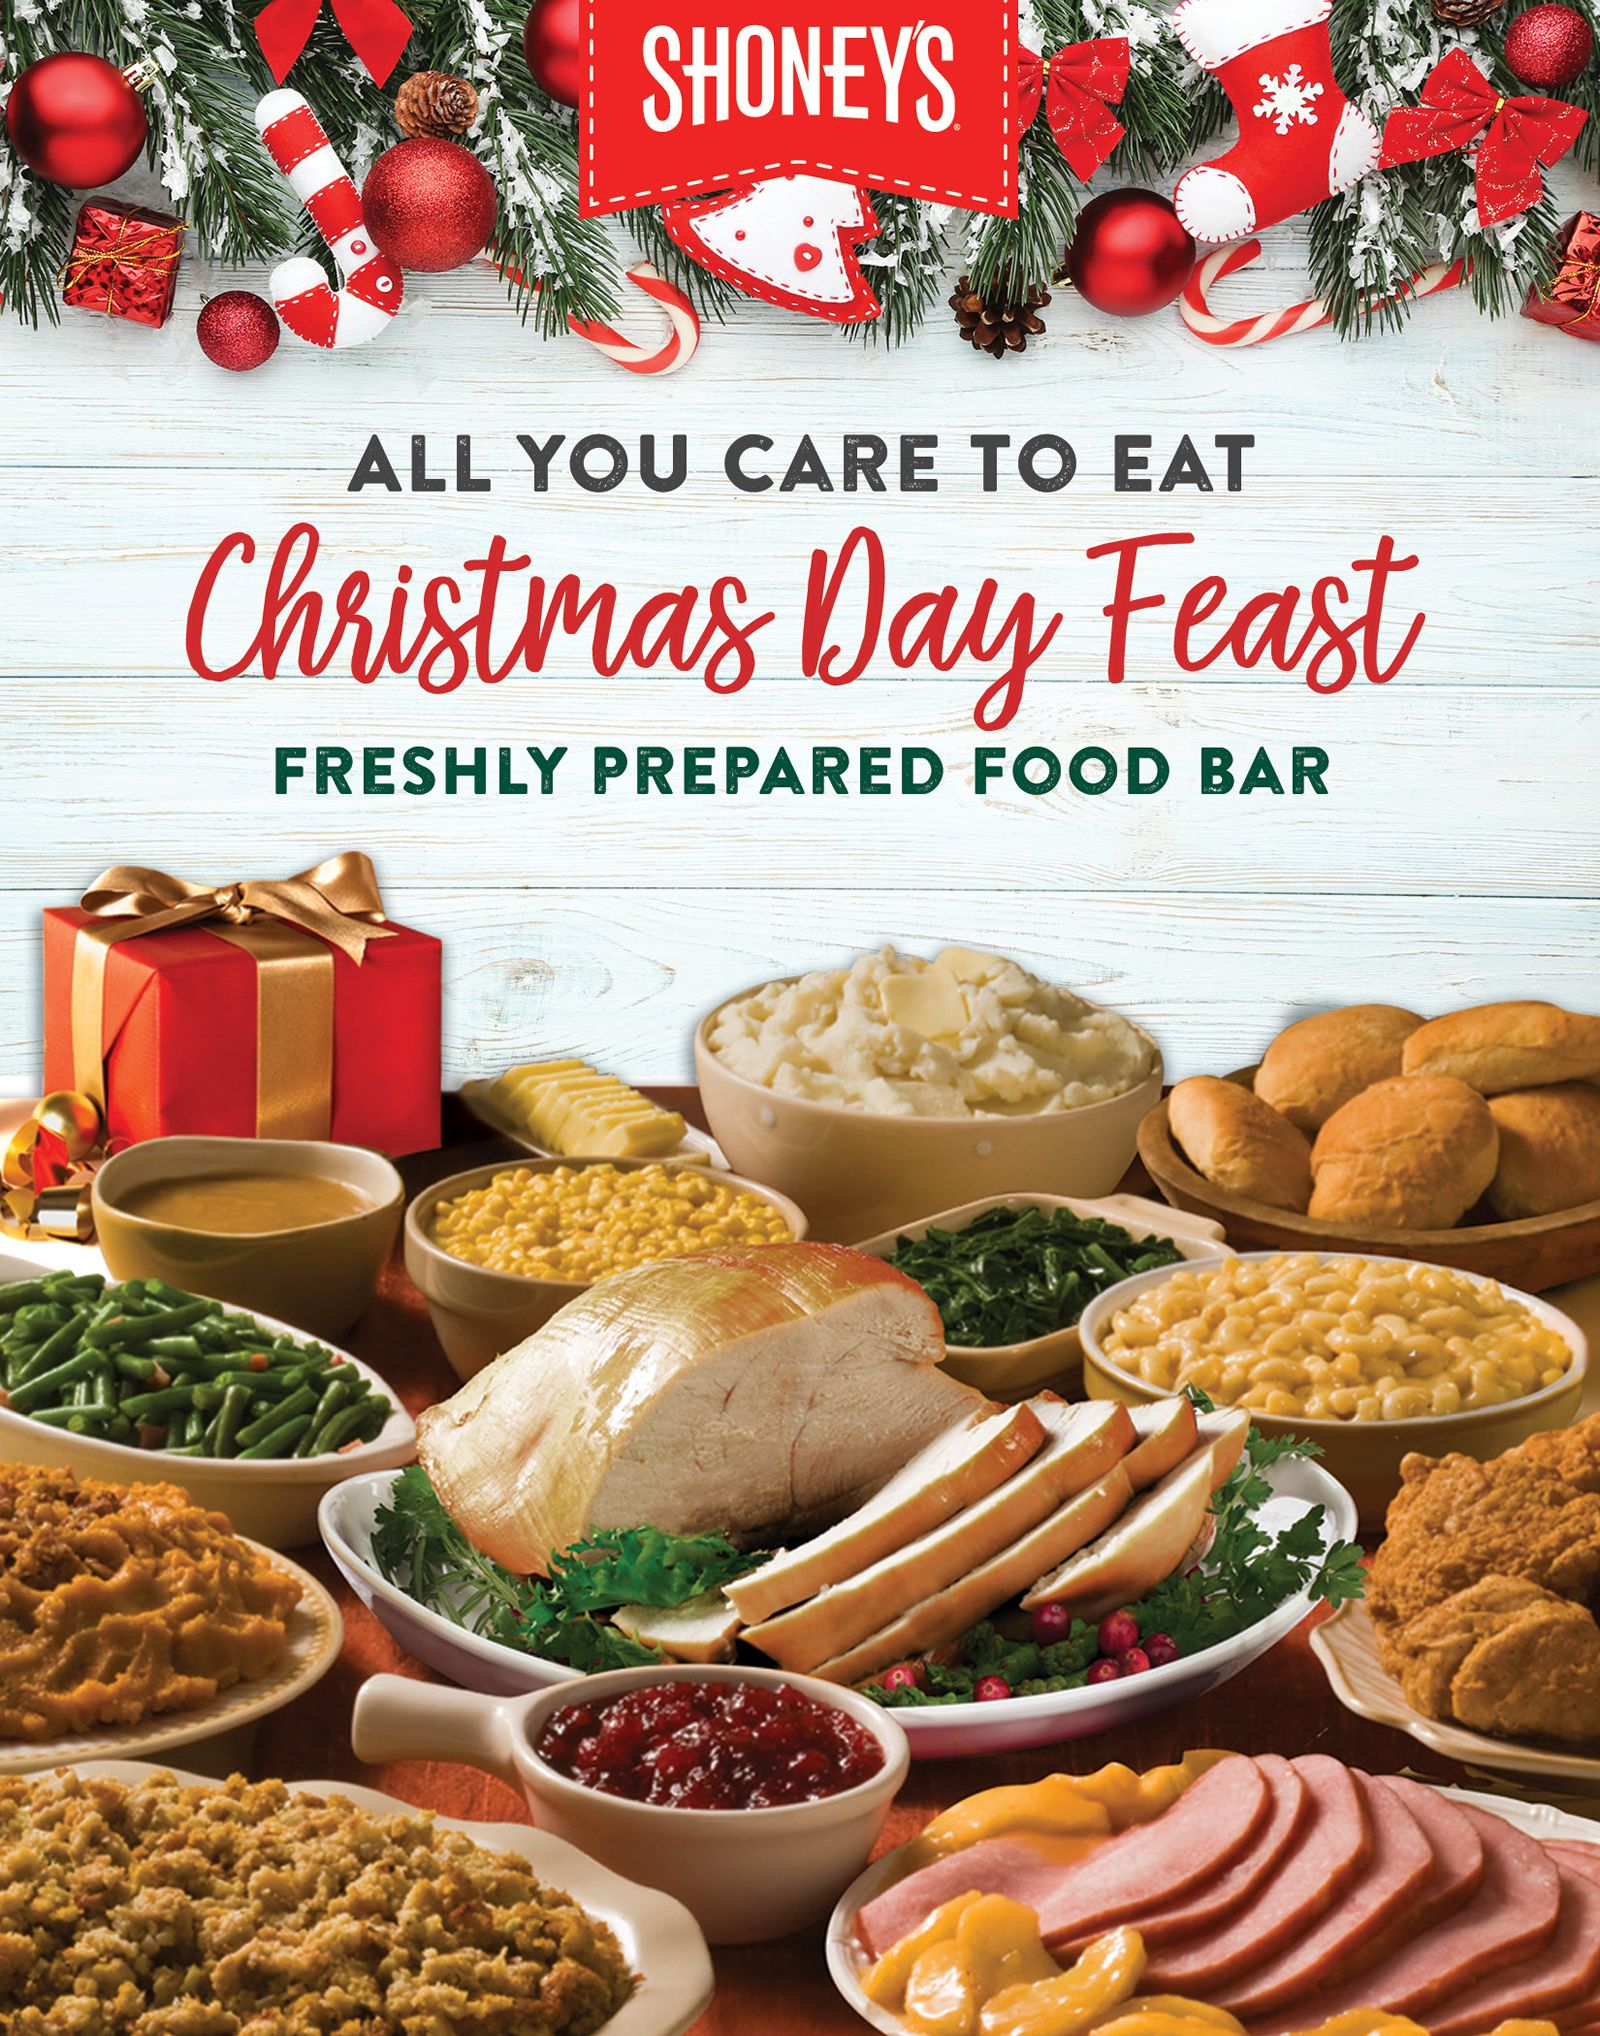 Wichita Restaurants Open Christmas Day 2021 Shoney S Doors Will Be Open For A Christmas Day Feast On Wednesday December 25 And Will Feature A Spectacular All You Care To Eat Freshly Prepared Food Bar Restaurantnews Com